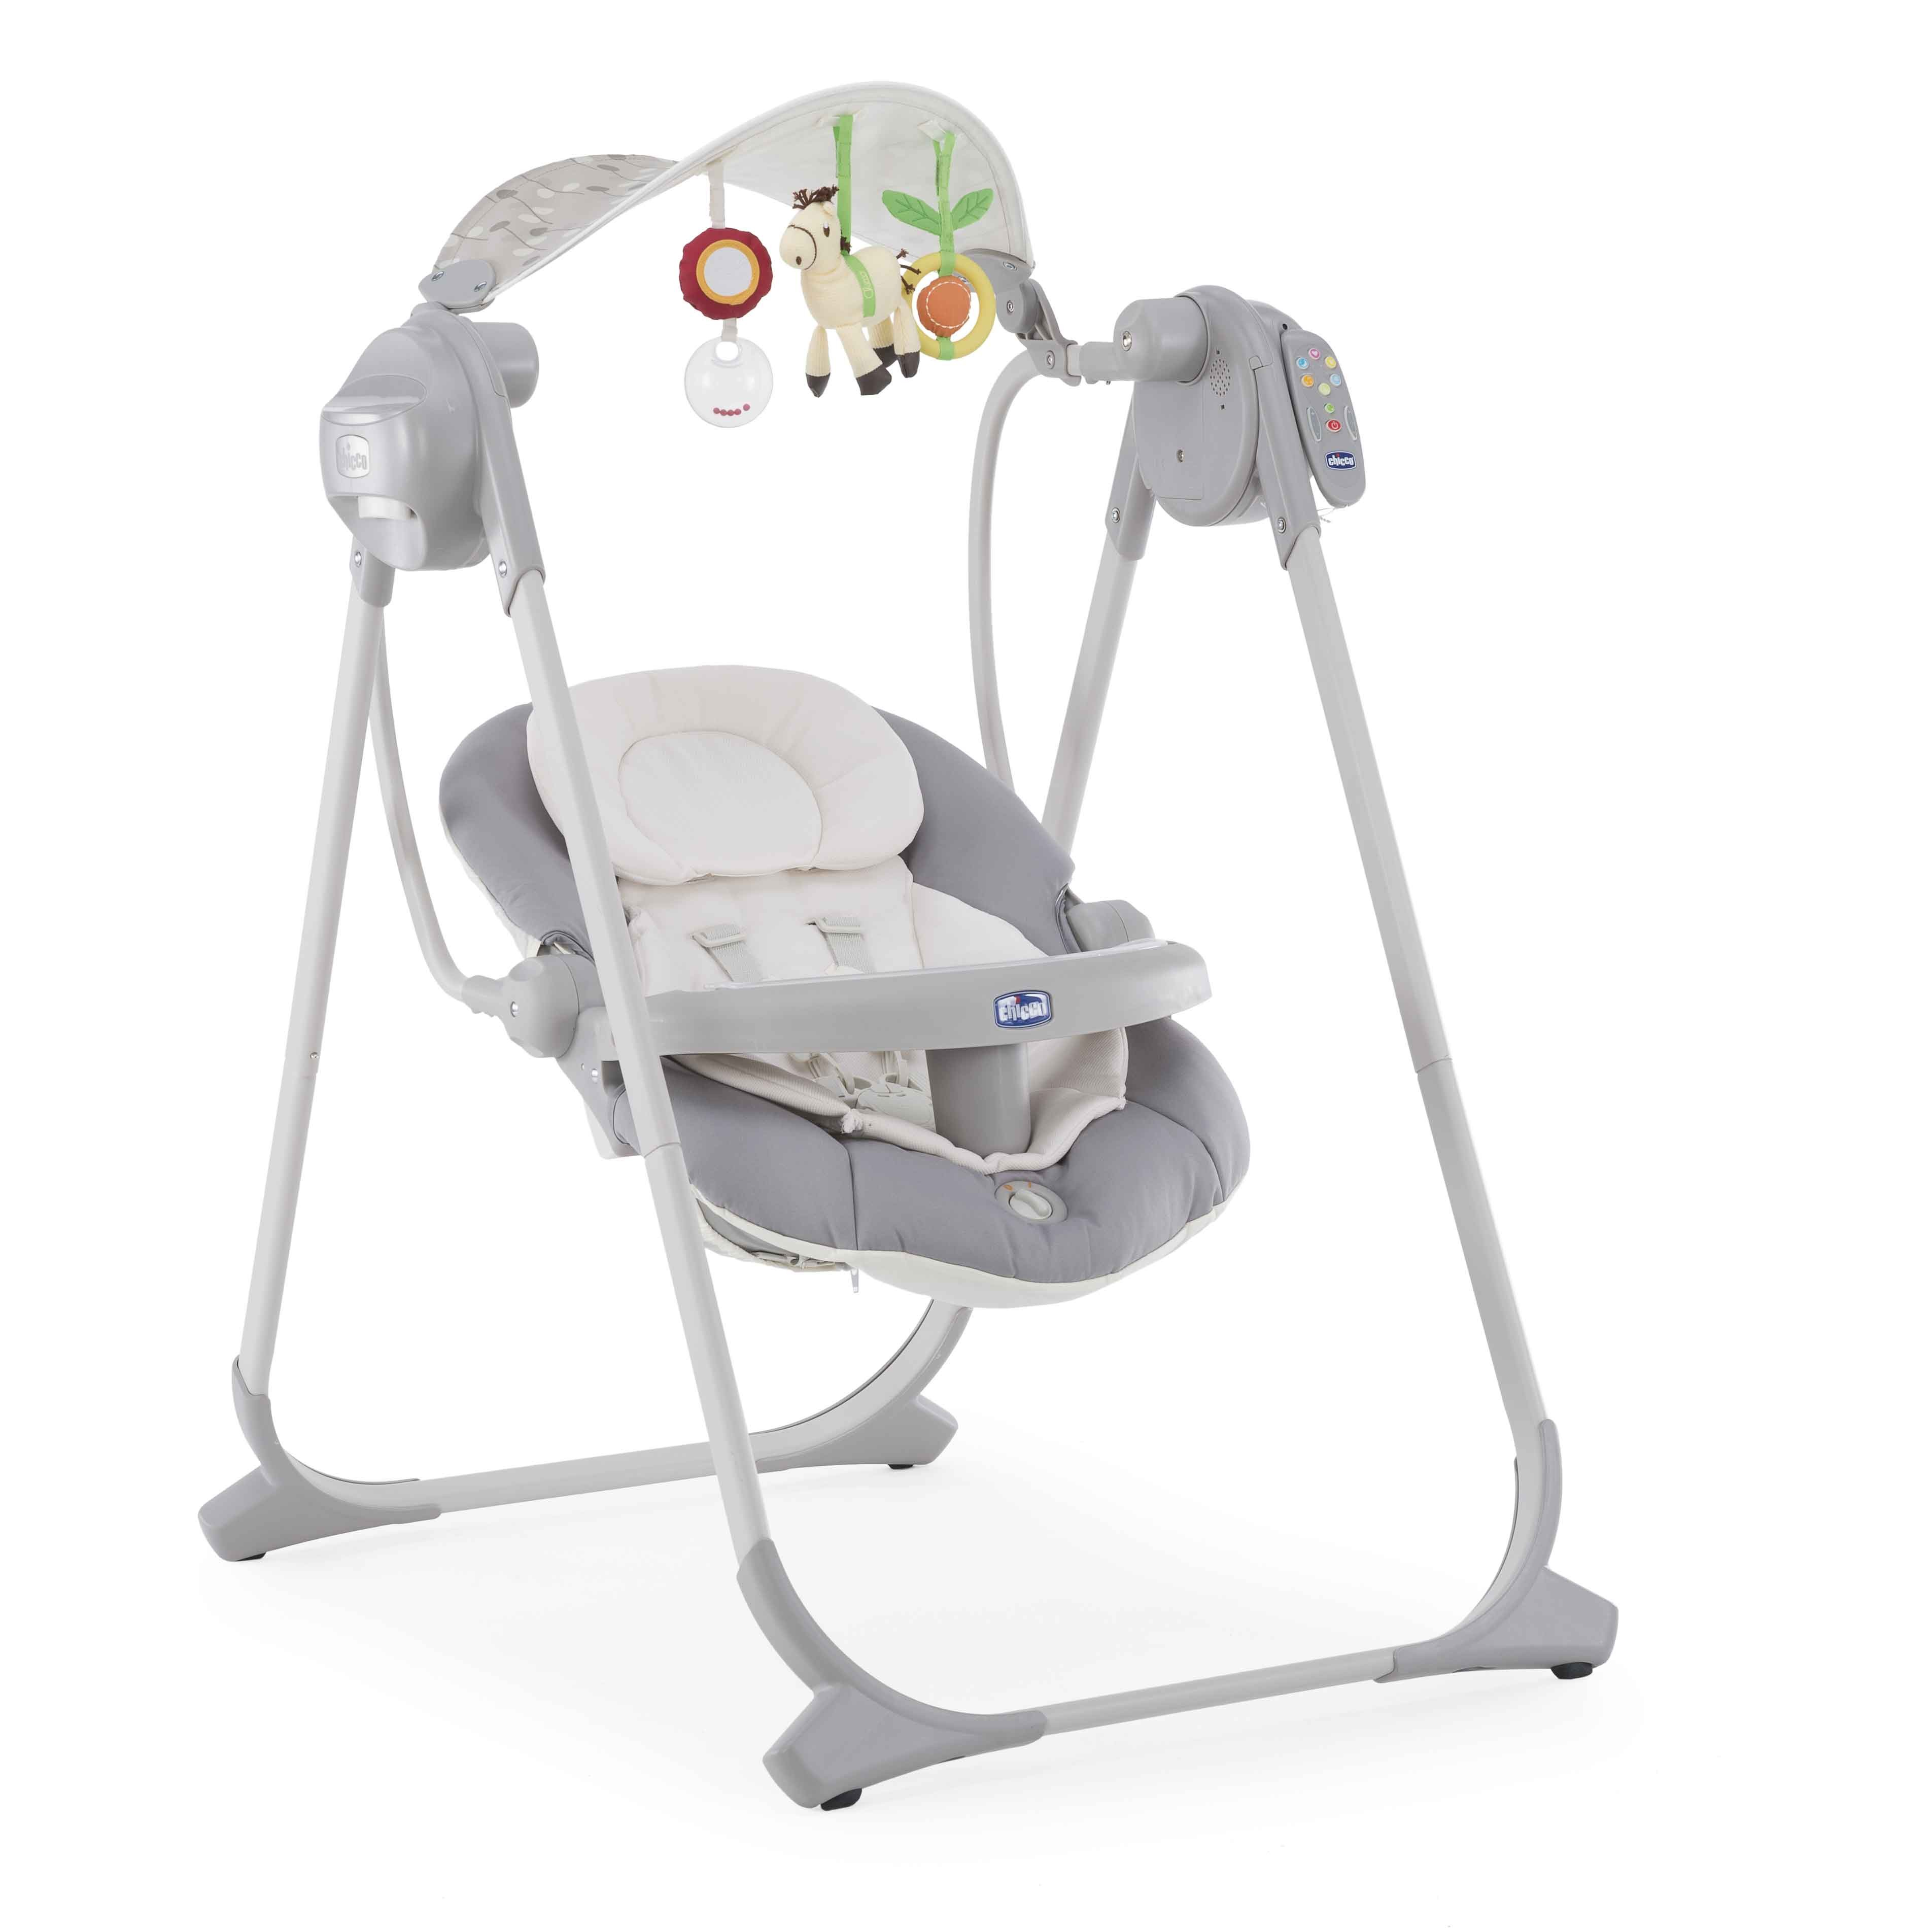 Качели Chicco Polly Swing UP, цвет: серебристый